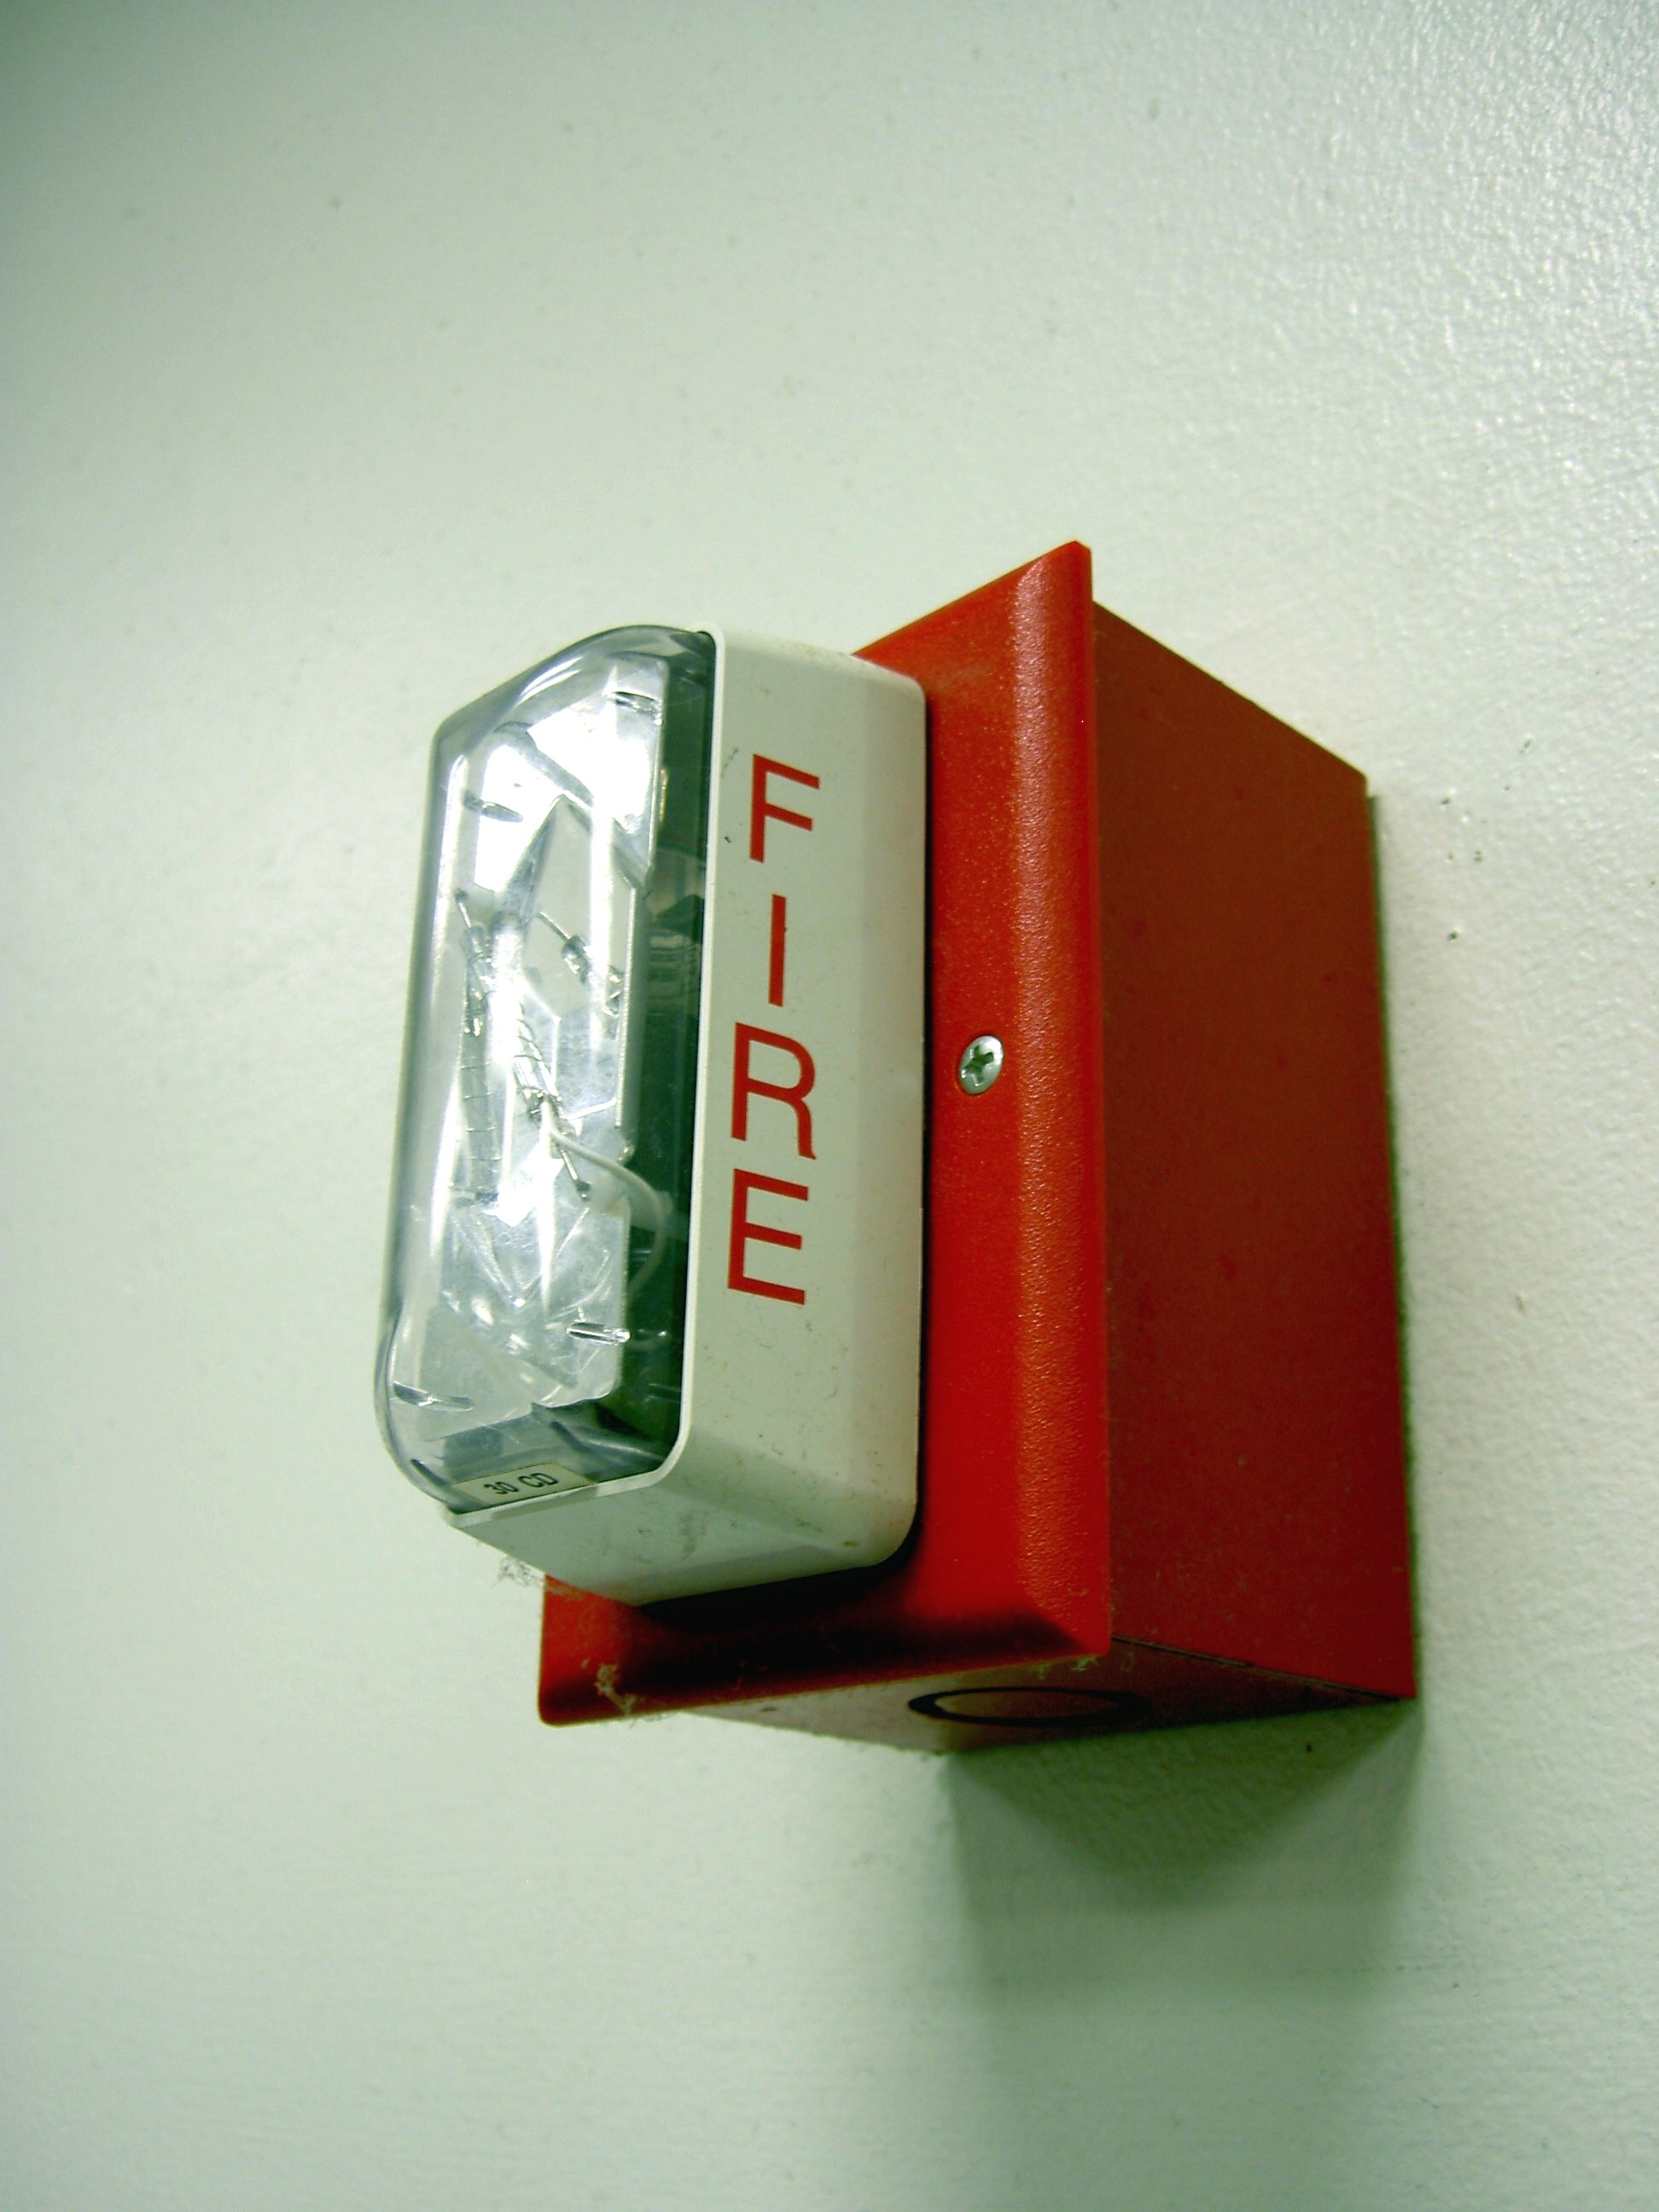 Science lab malfunction leads to fire alarm